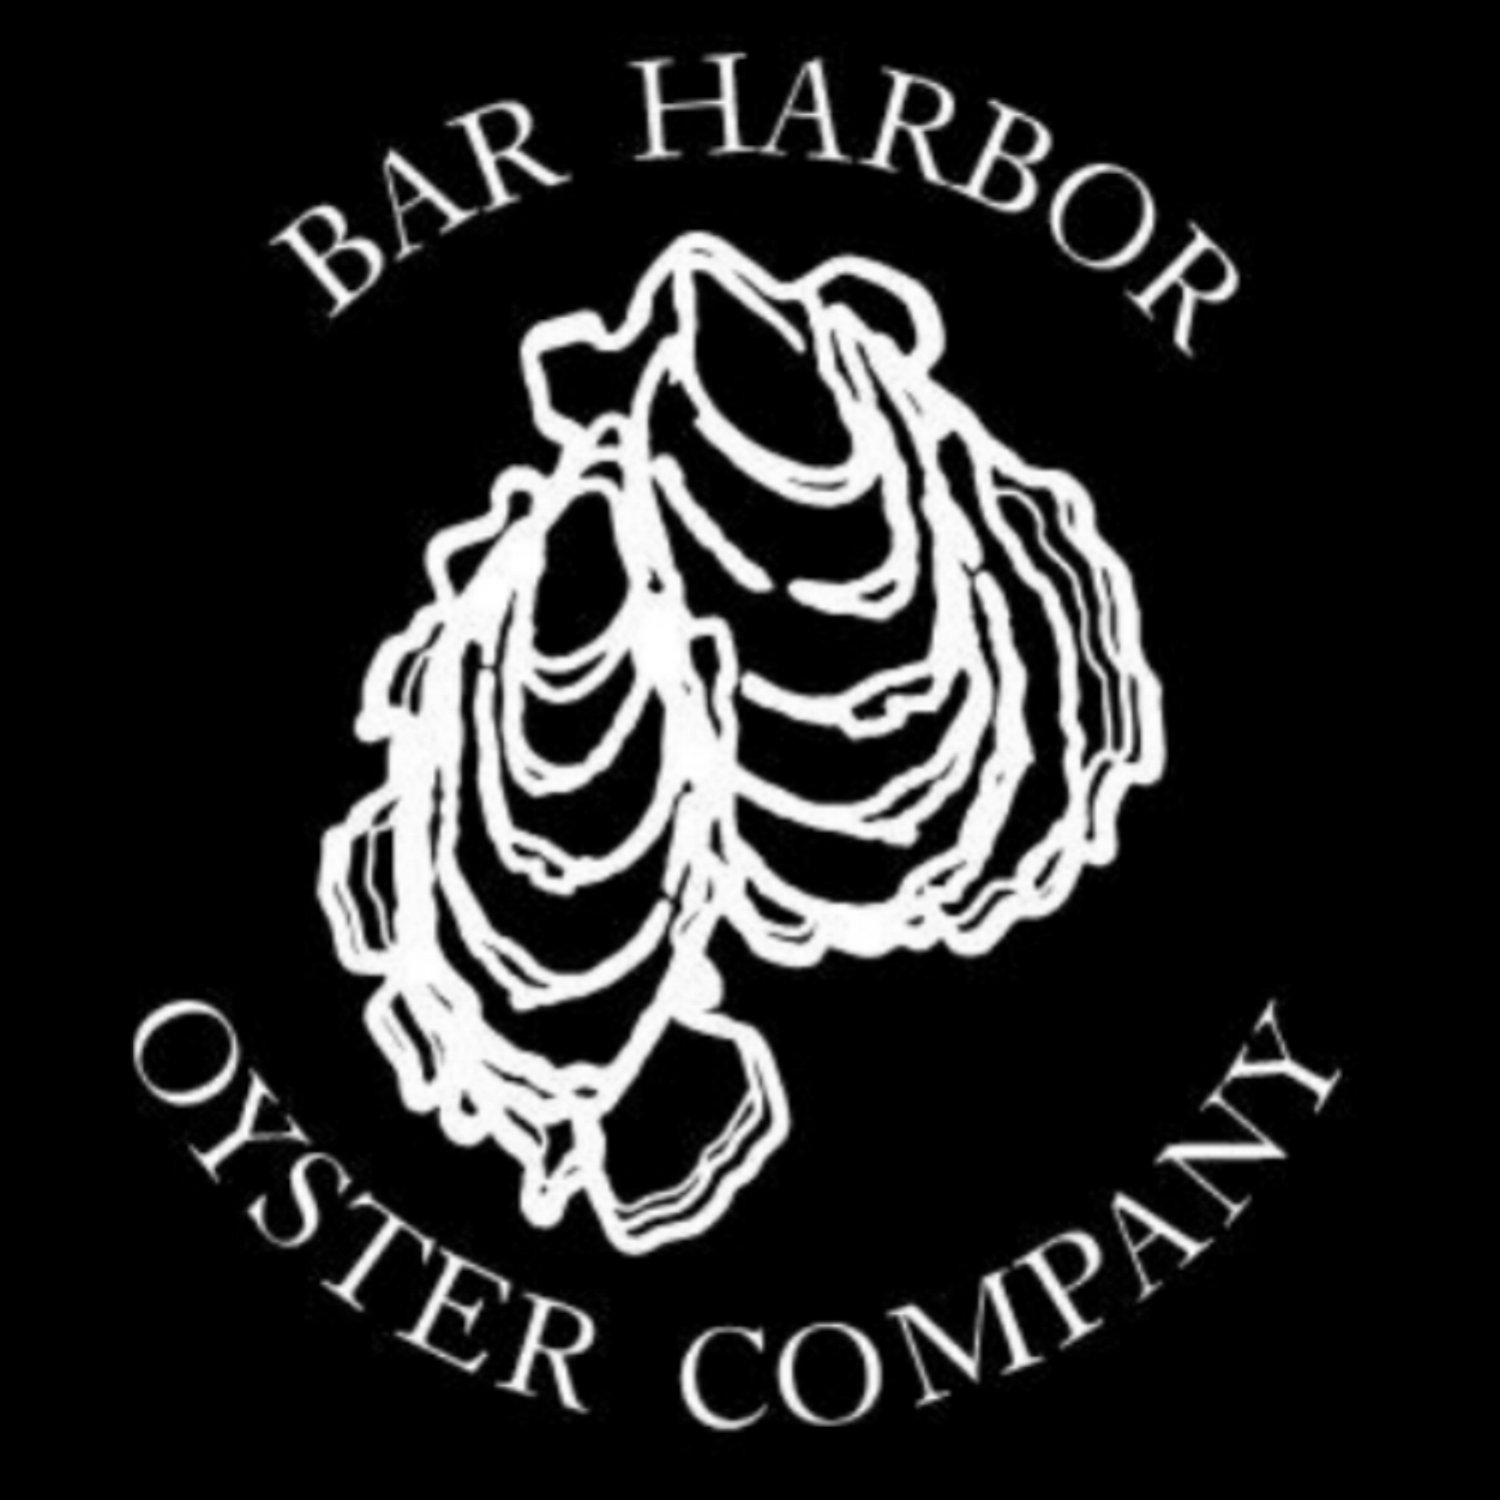 Bar Harbor Oyster Co.